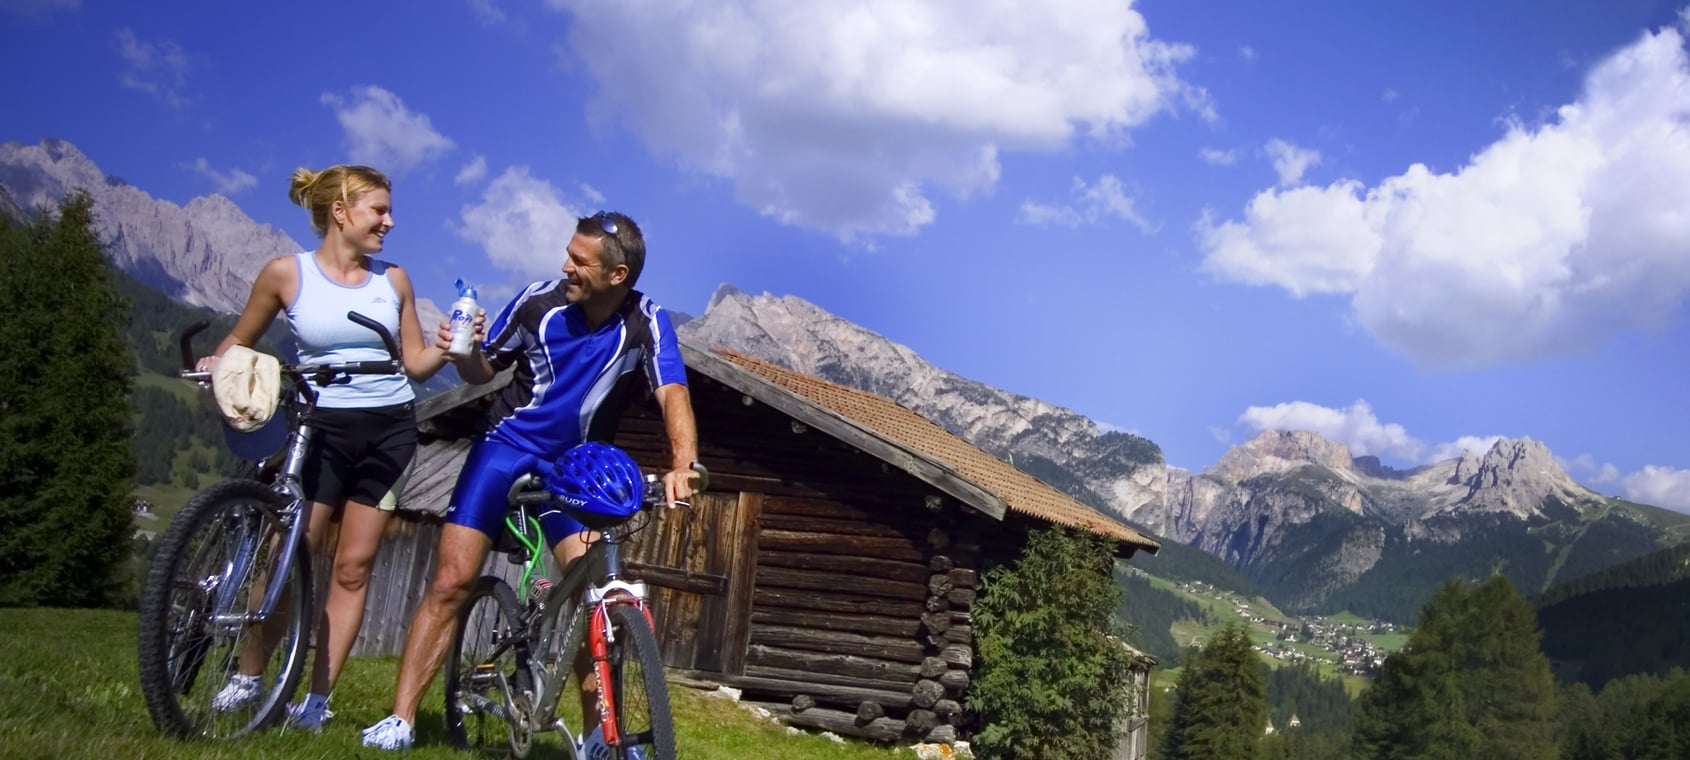 MTB in the Dolomites